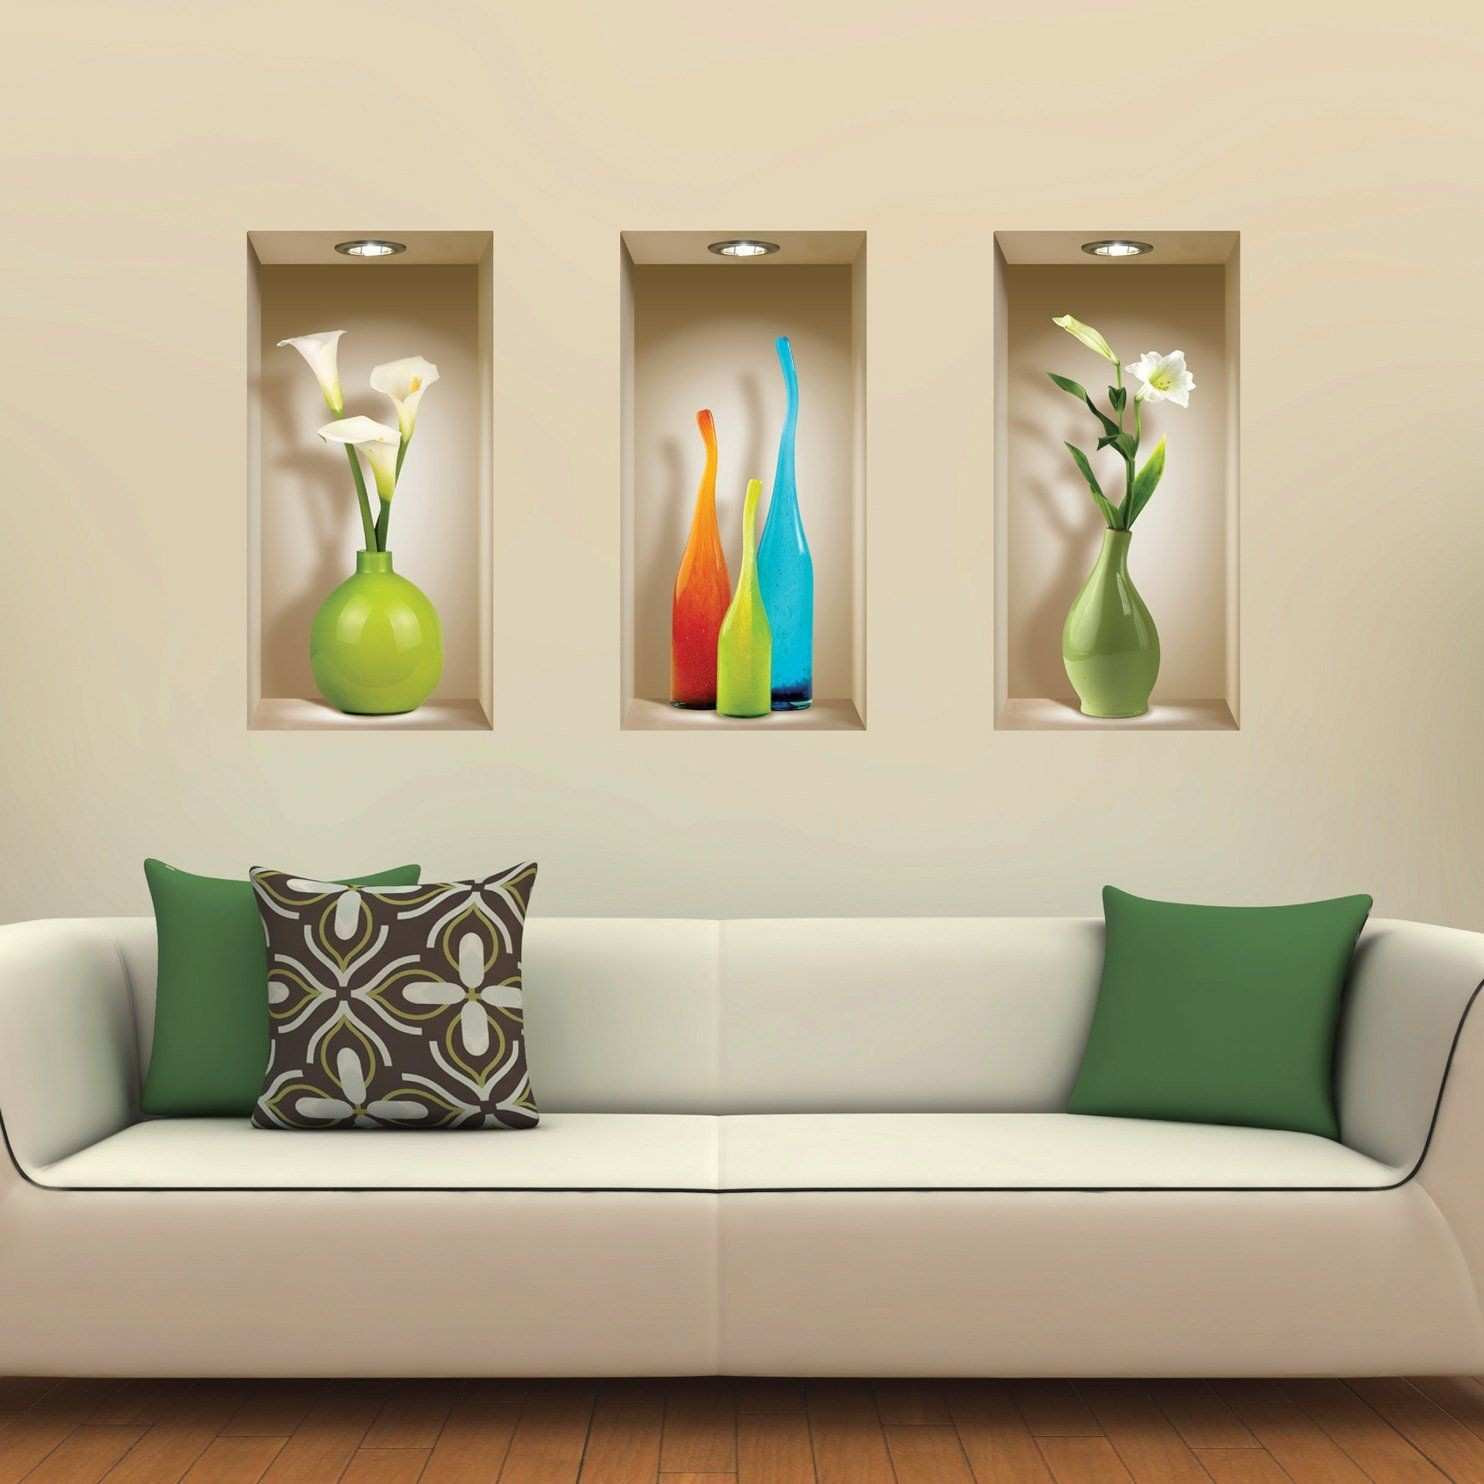 Lime Green Floor Vase Of Decorating Ideas for Living Rooms with Green Walls Inspirational Big with Decorating Ideas for Living Rooms with Green Walls Lovely 13 Of the Most Stunning Illuminated Wall